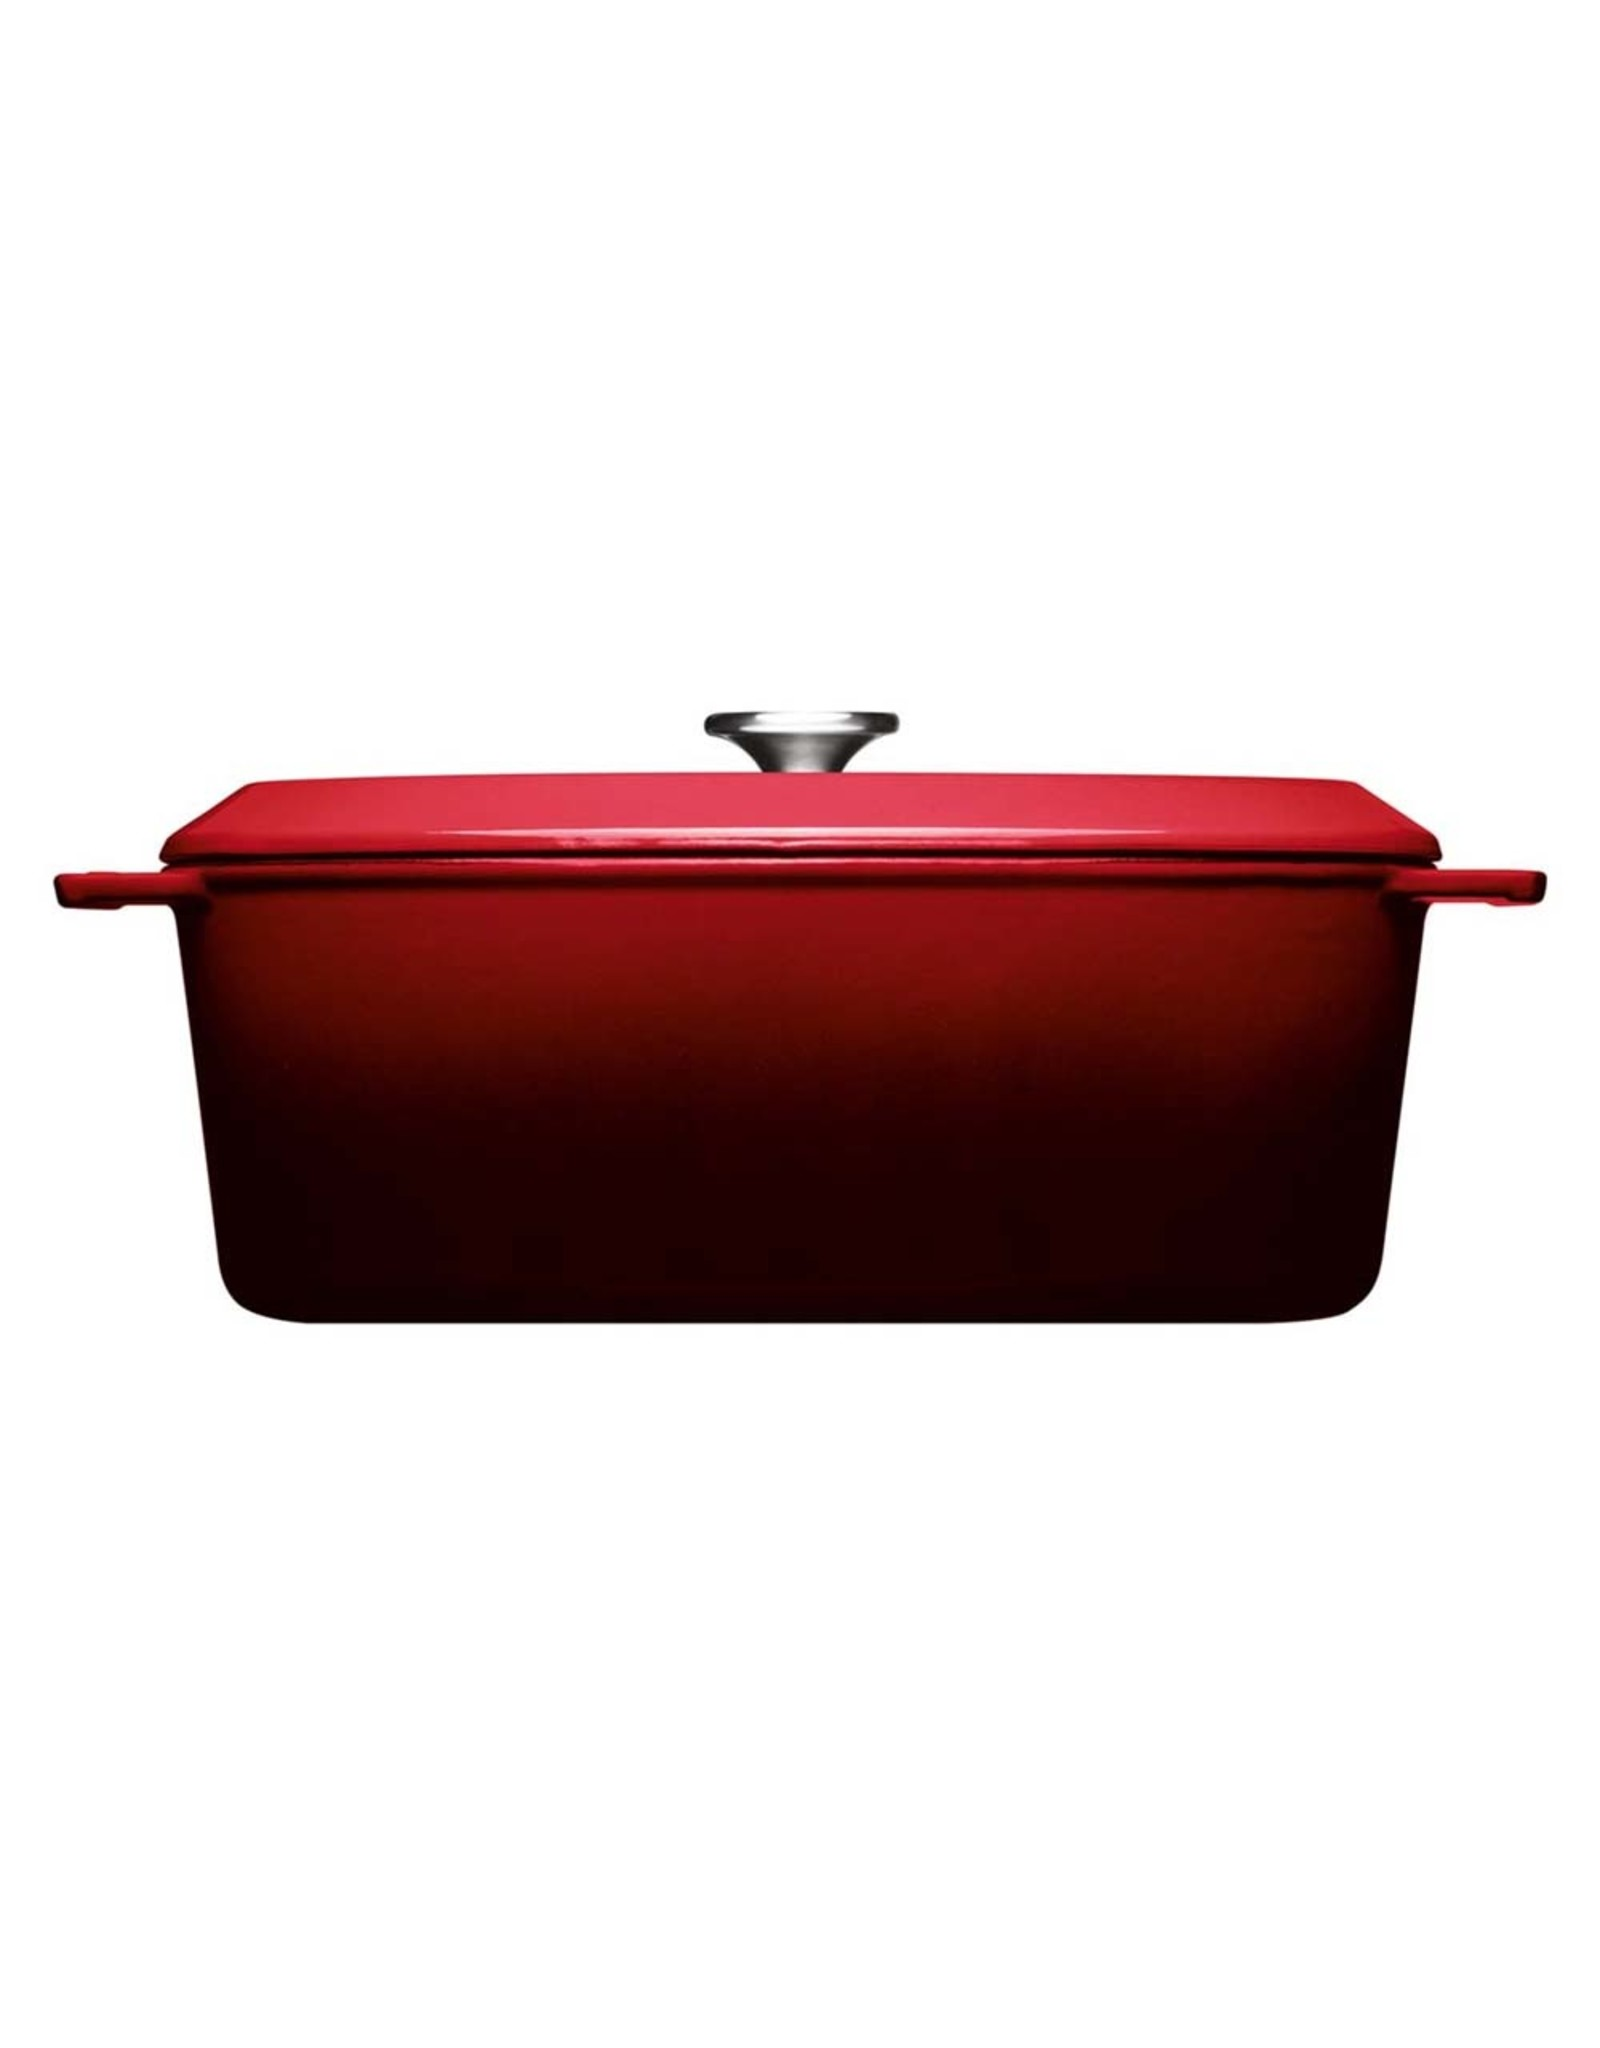 WOLL WOLL 3426CI-010 IRON COVERED OVAAL 7.5LTR 34X26X12.5CM CHILI RED